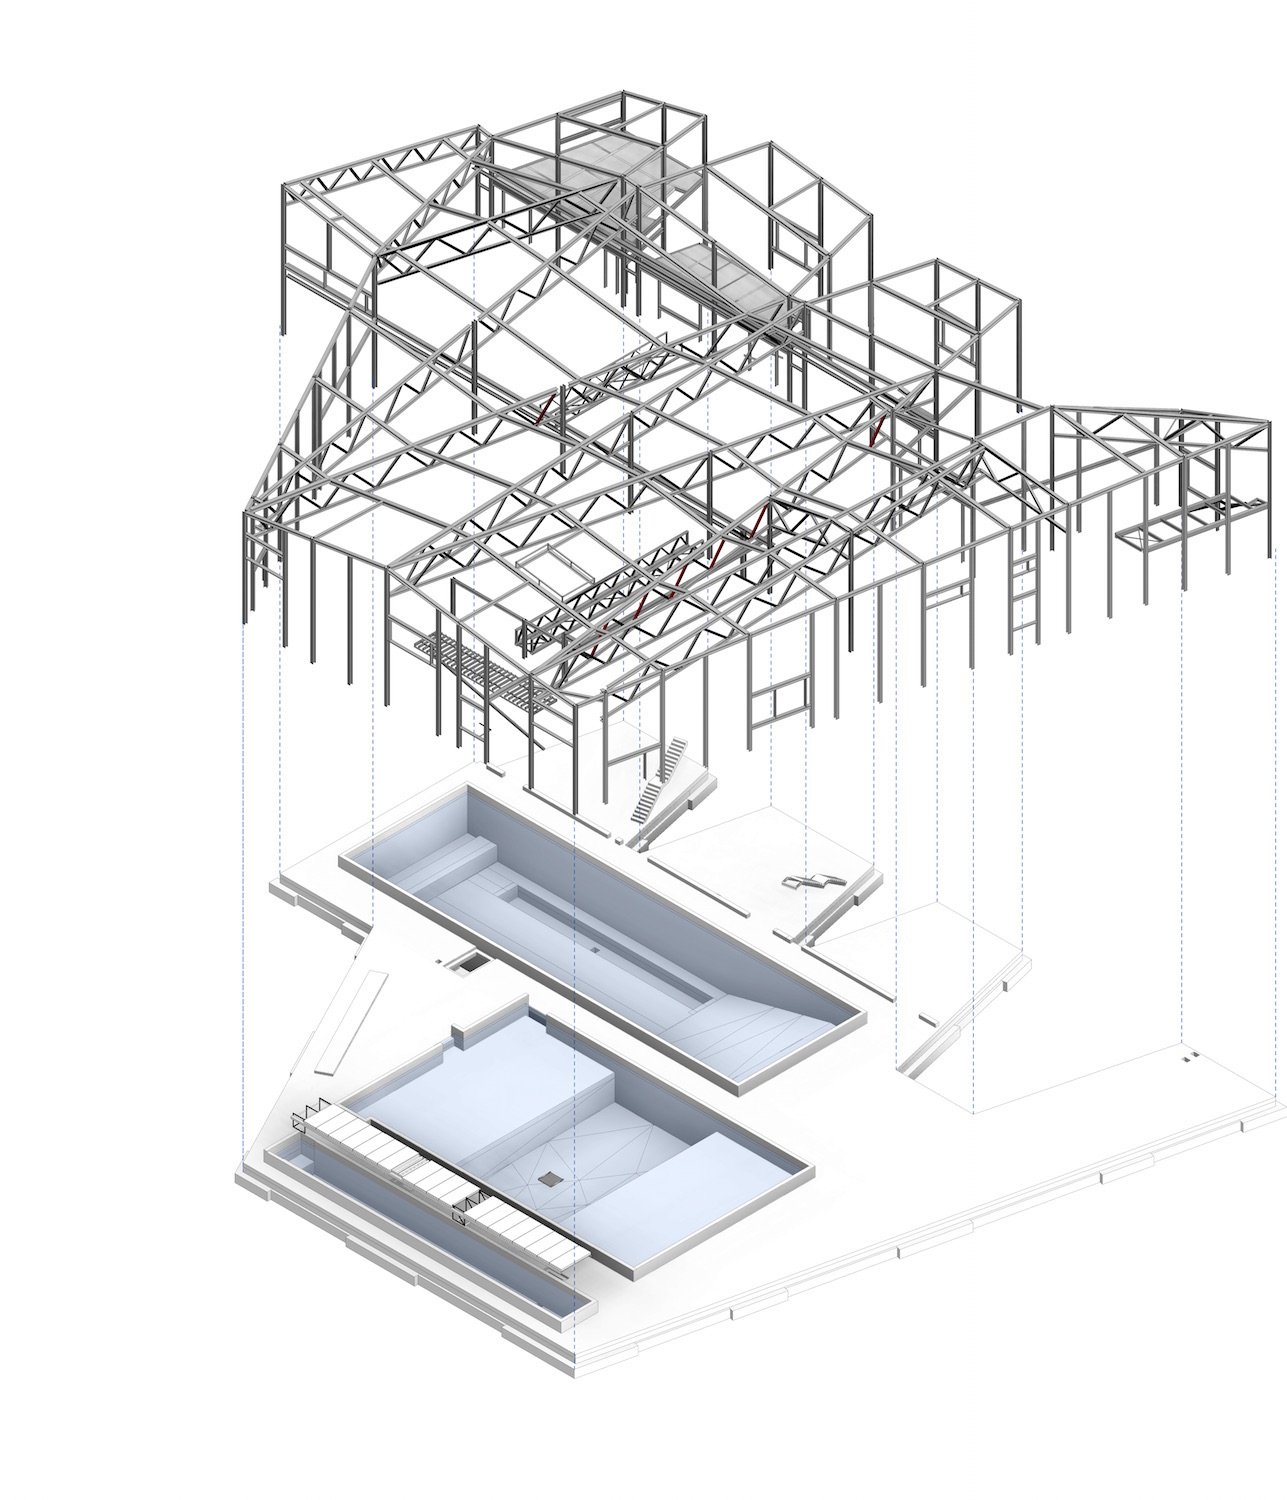 Exploded axonometric, showing steel structure and research pools }